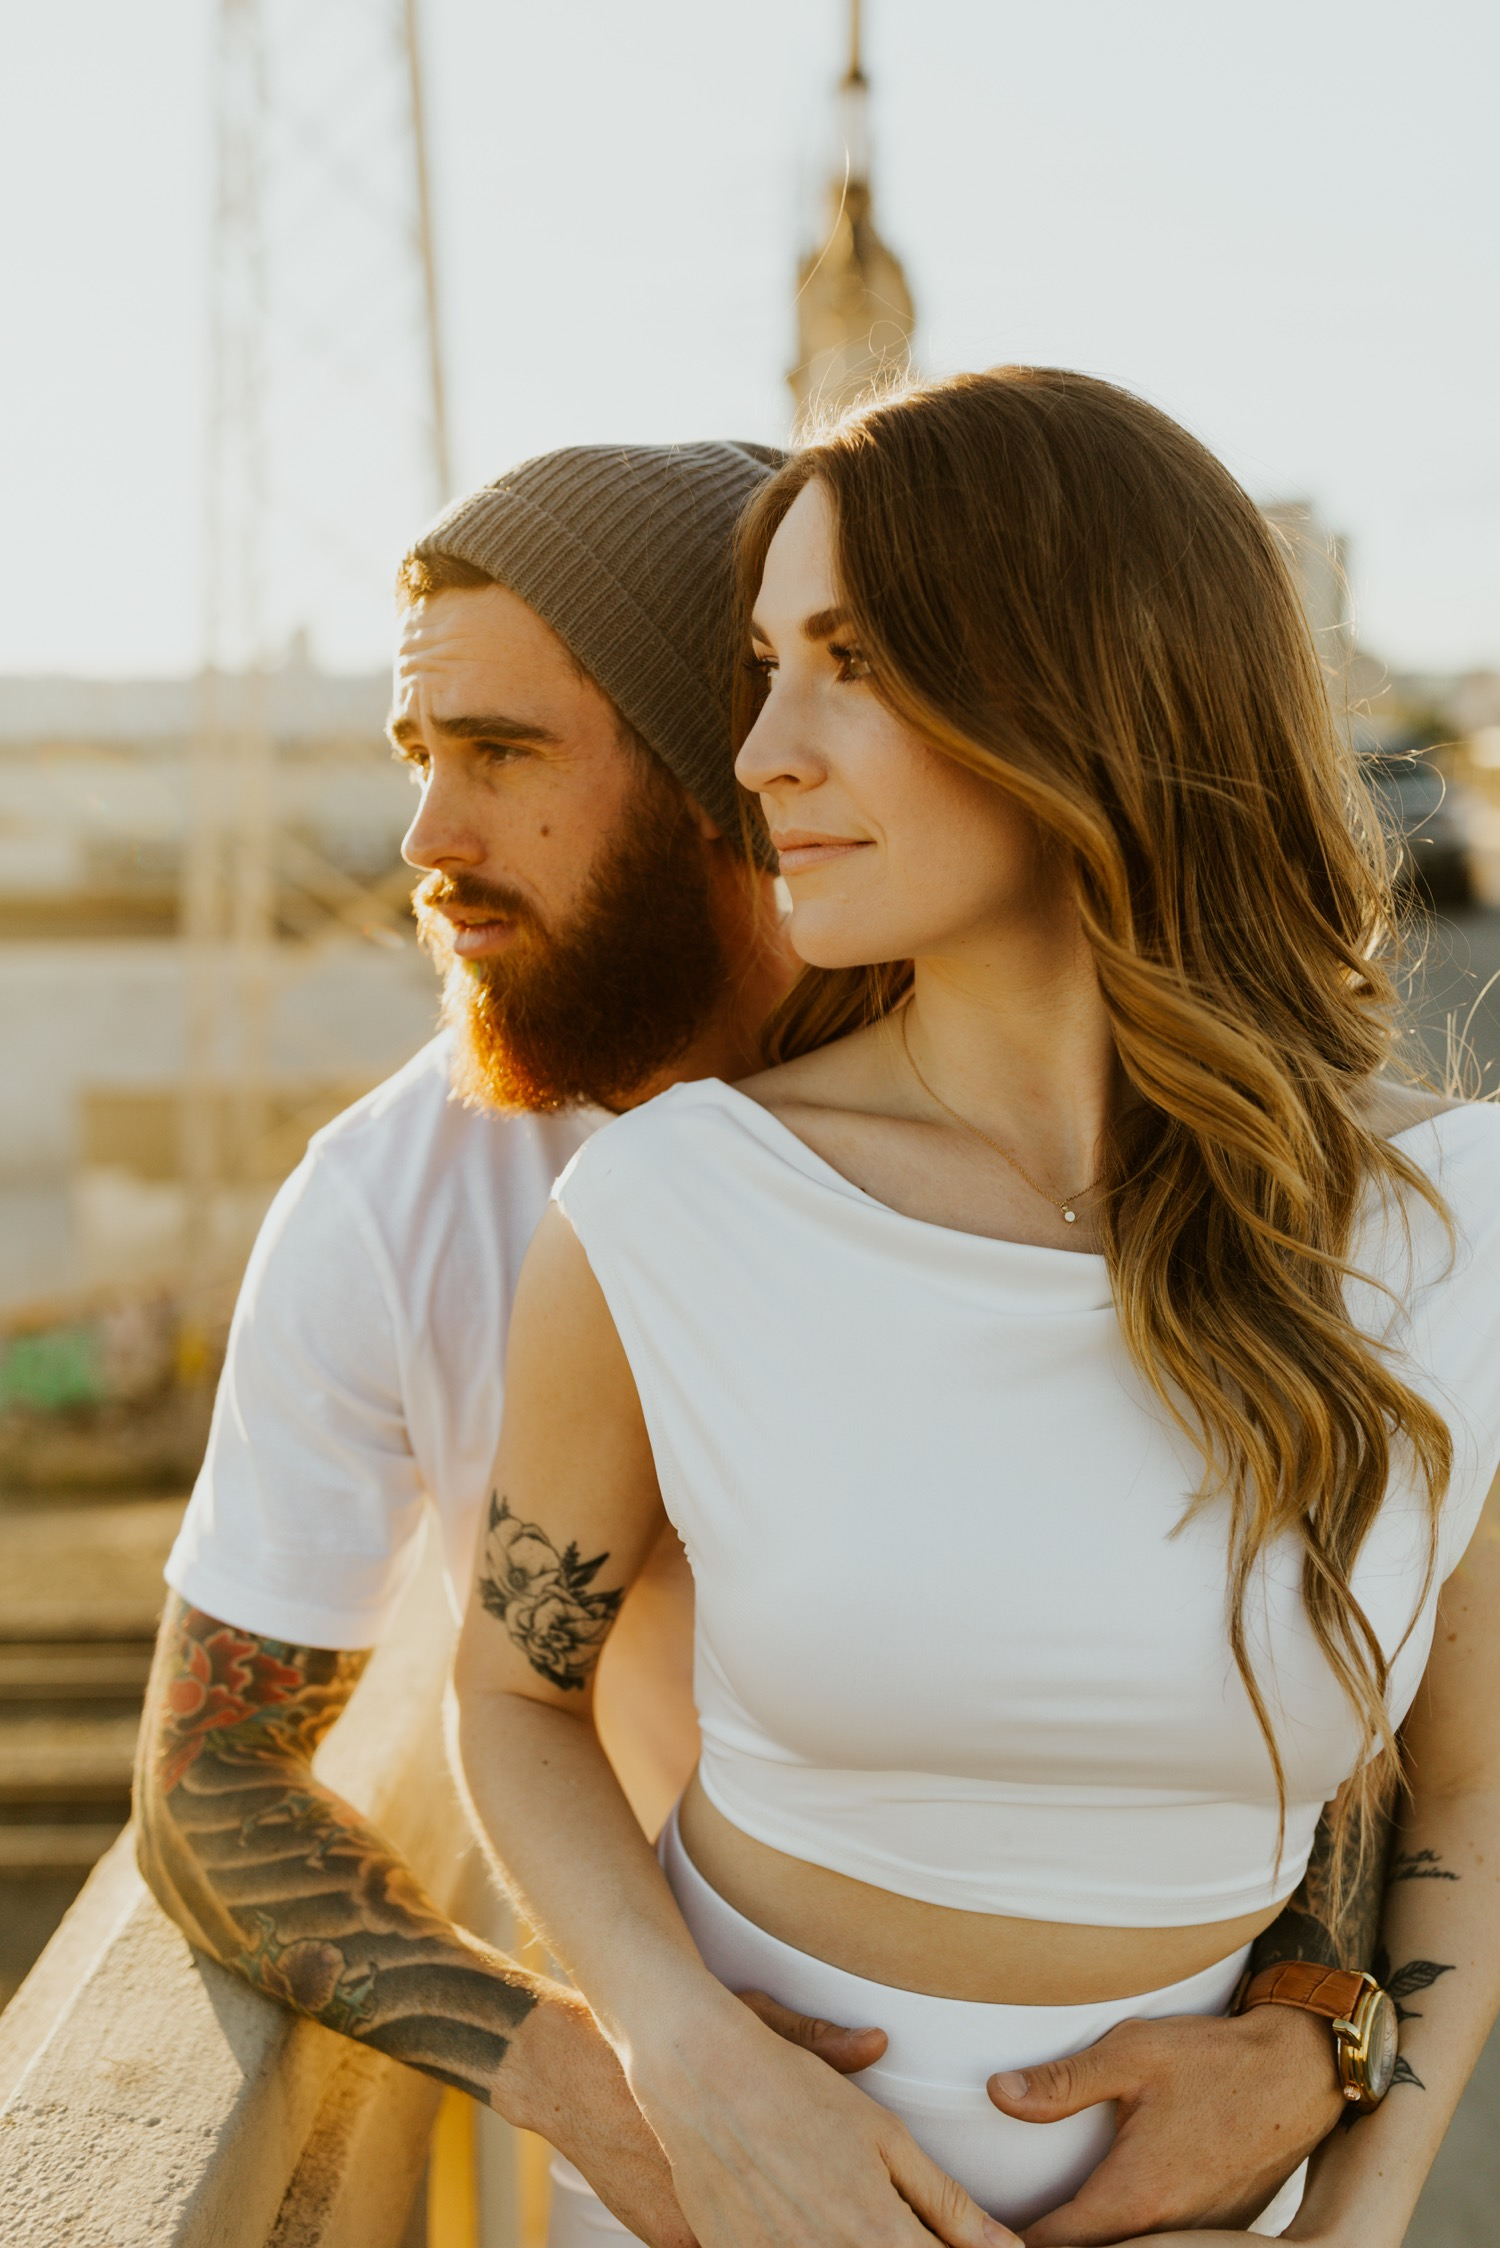 17_Downtown Arts District Los Angeles Engagement Session Megan & Ronnie | Emily Magers Photography-89.jpg